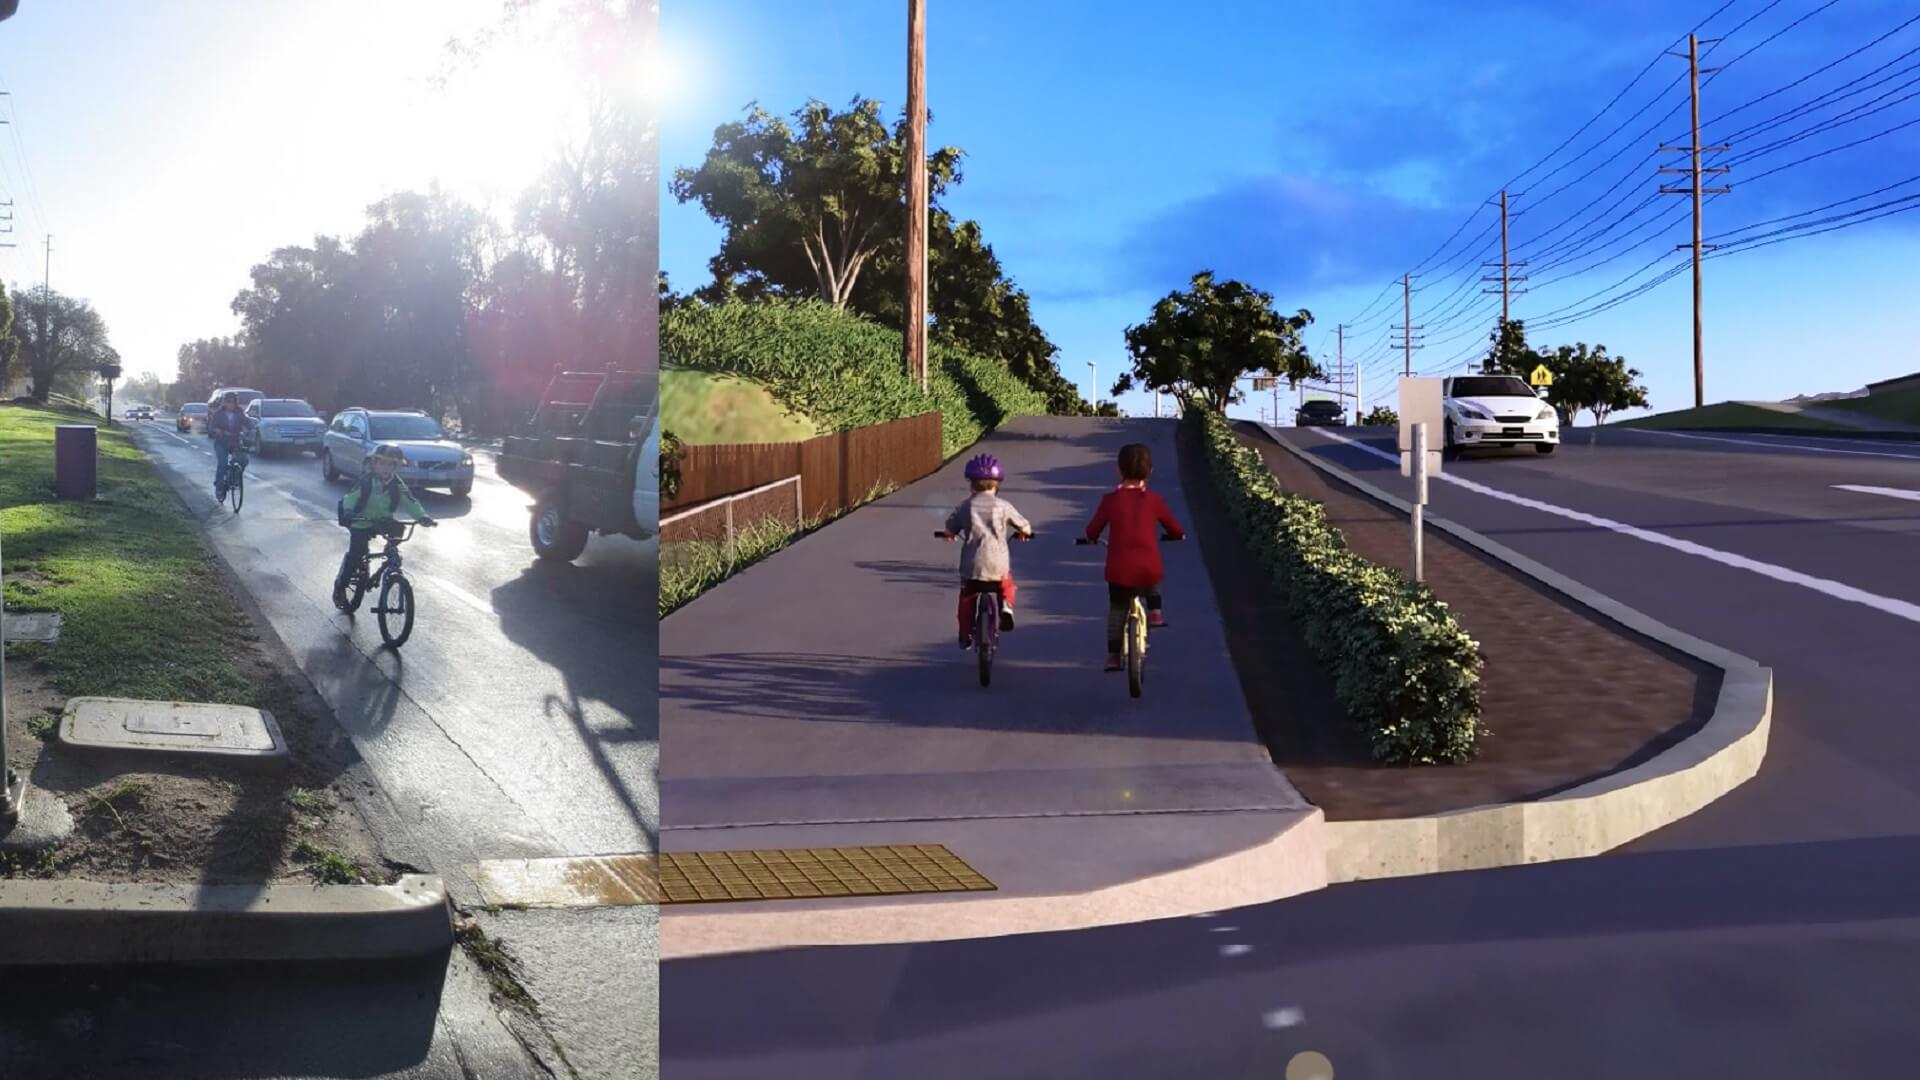 The image on the left shows the current bike path, while the right shows the planned bike path.